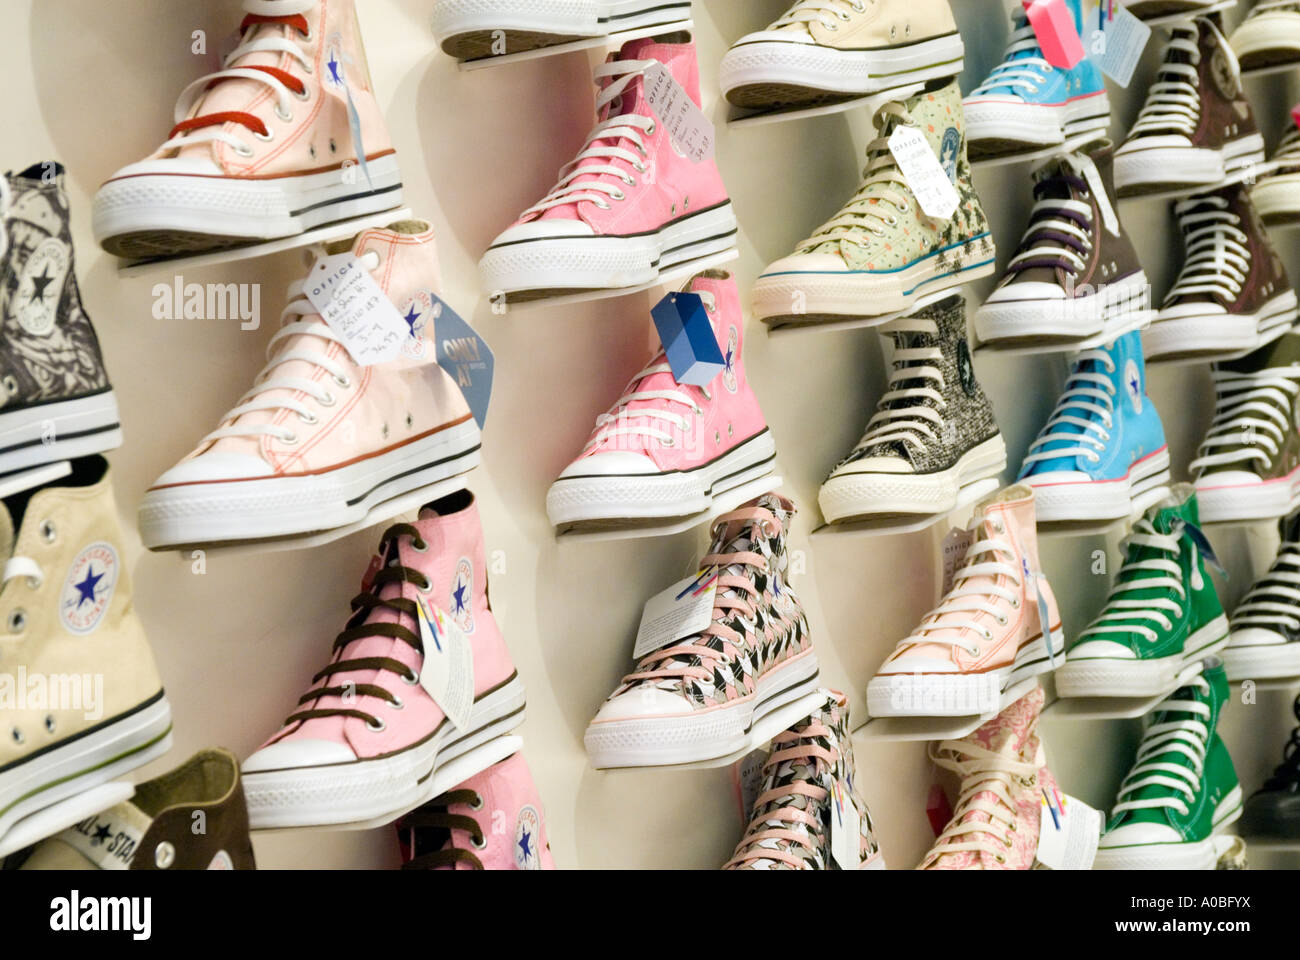 Rows of Converse All Star shoes in shop England UK - Stock Image